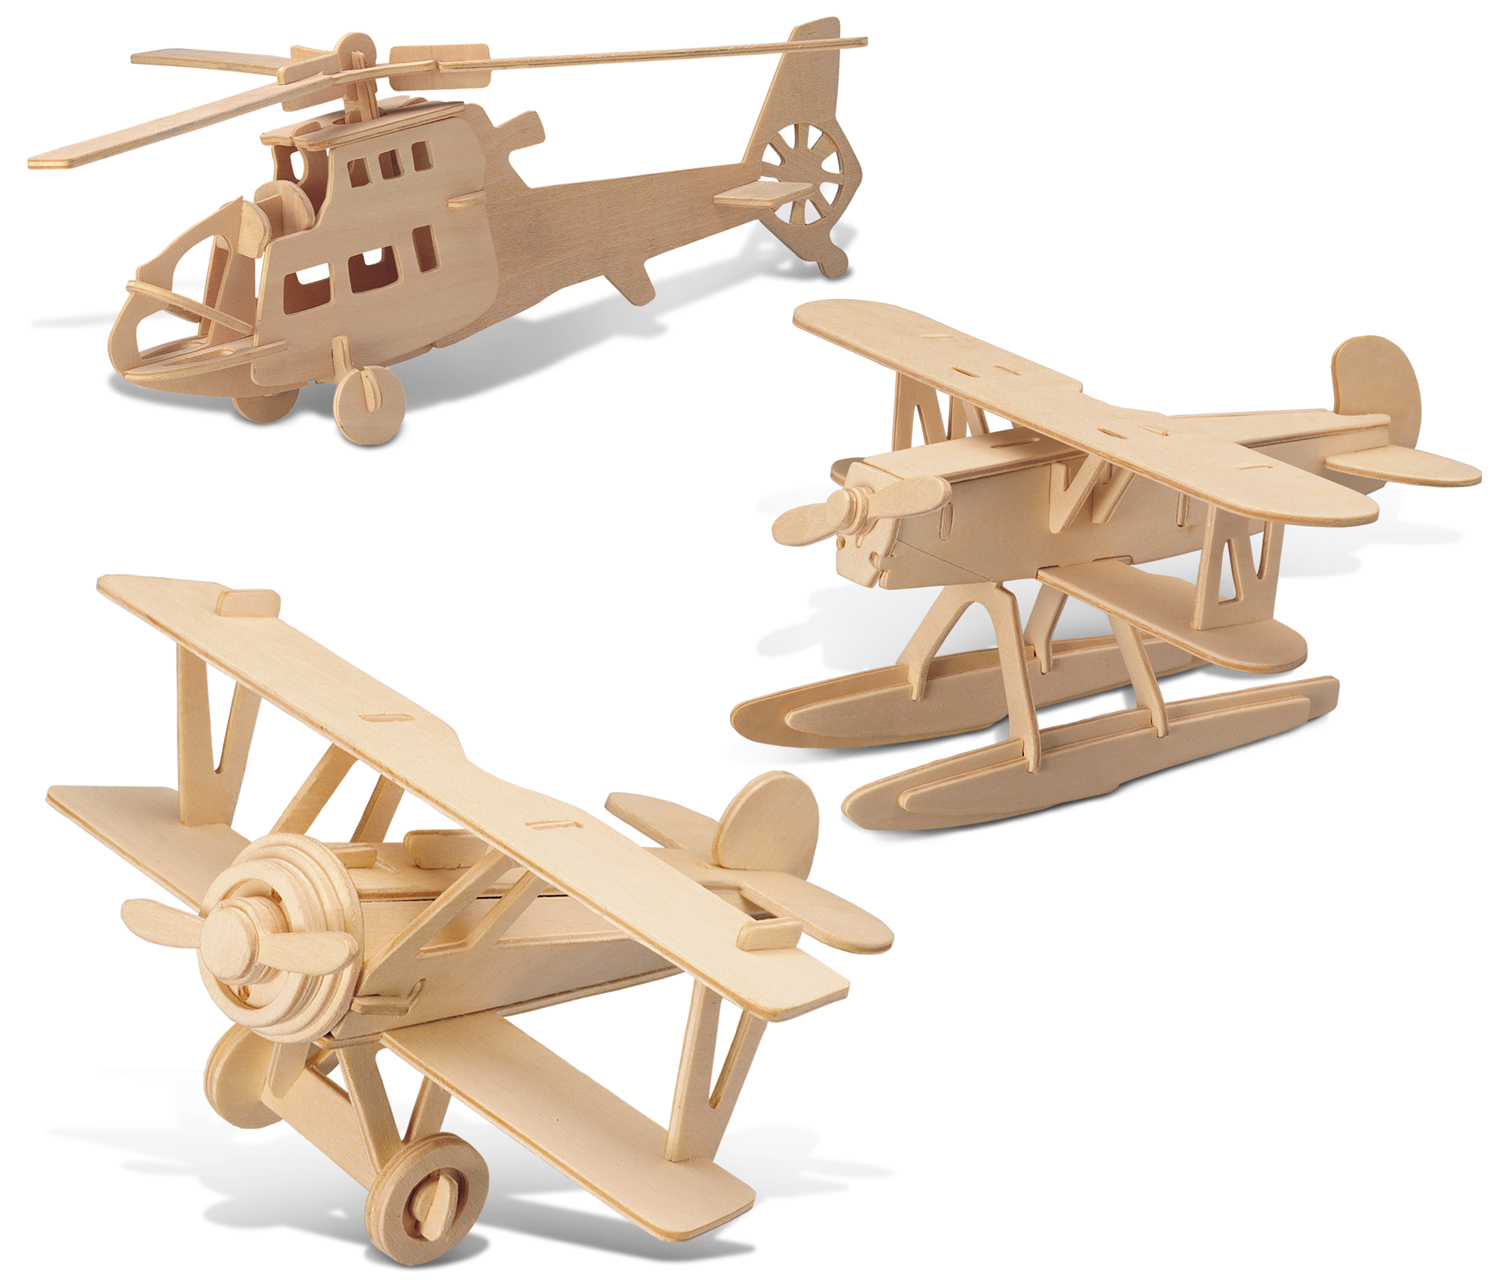 Puzzled Water Plane, Chopper and Nieuport 17 Wooden 3D Puzzle Construction Kit by Puzzled Inc